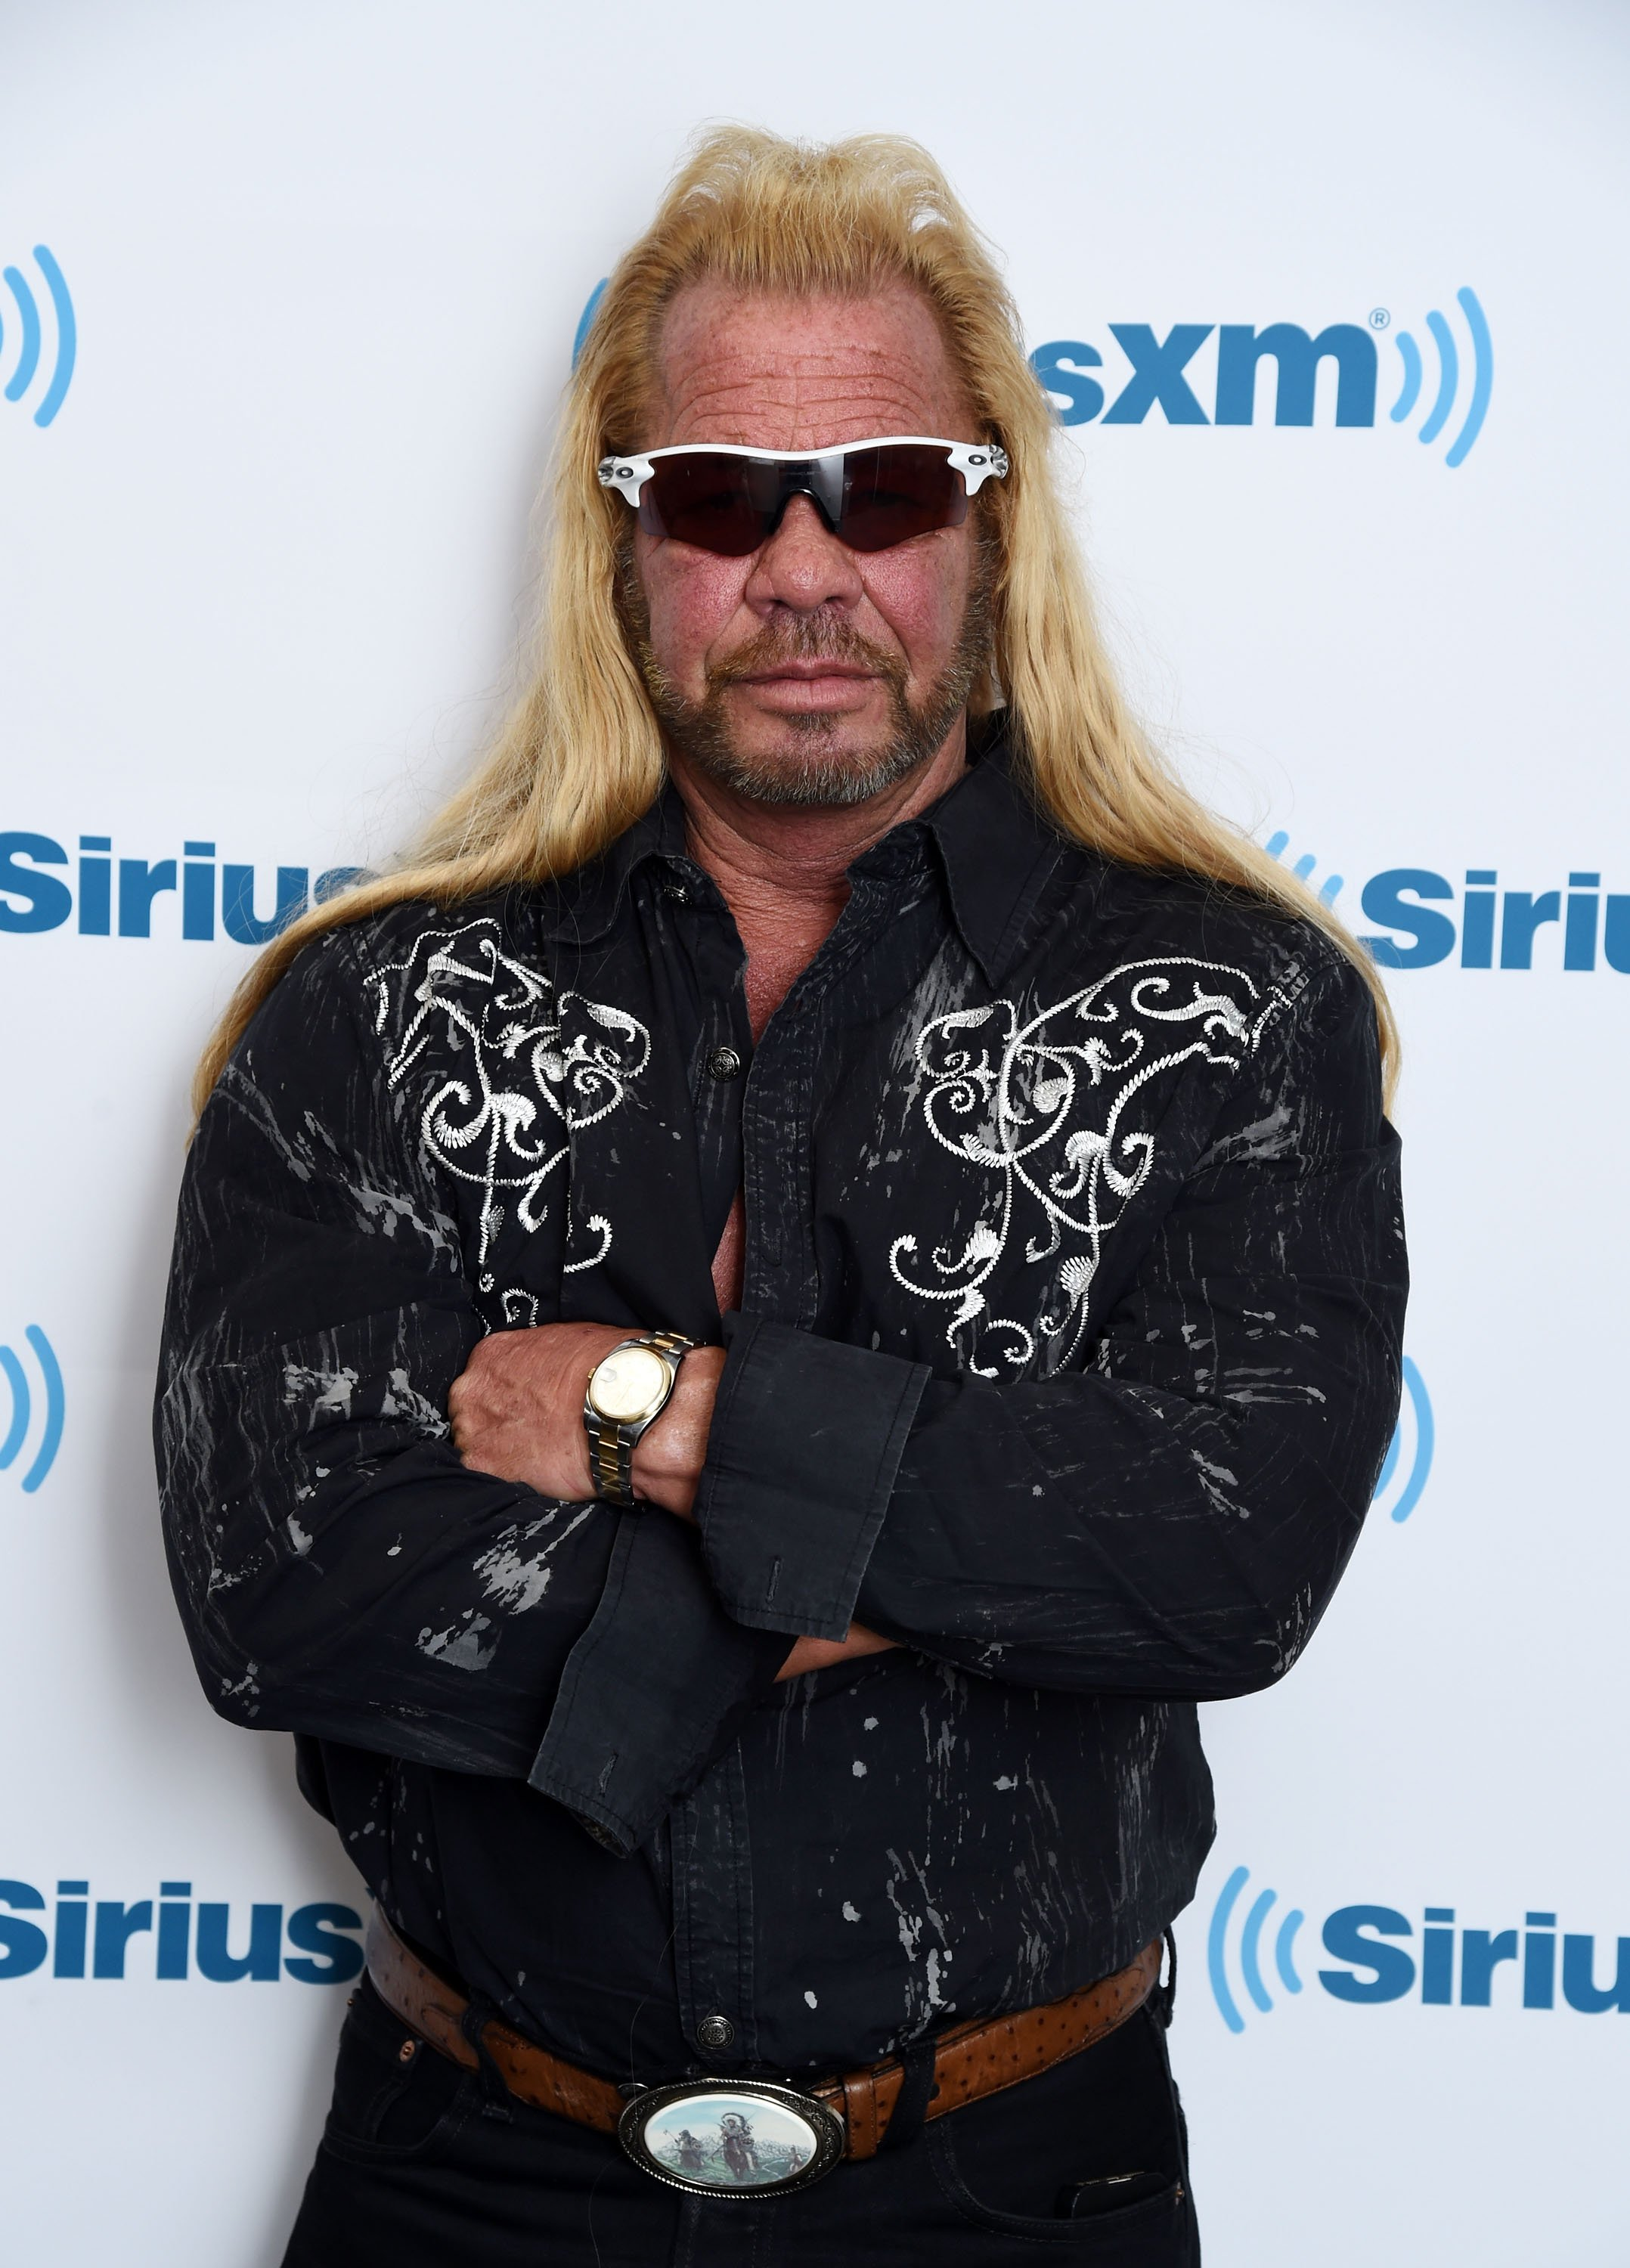 Duane Chapman visits the SiriusXM Studios on April 24, 2015 in New York City | Photo: Getty Images